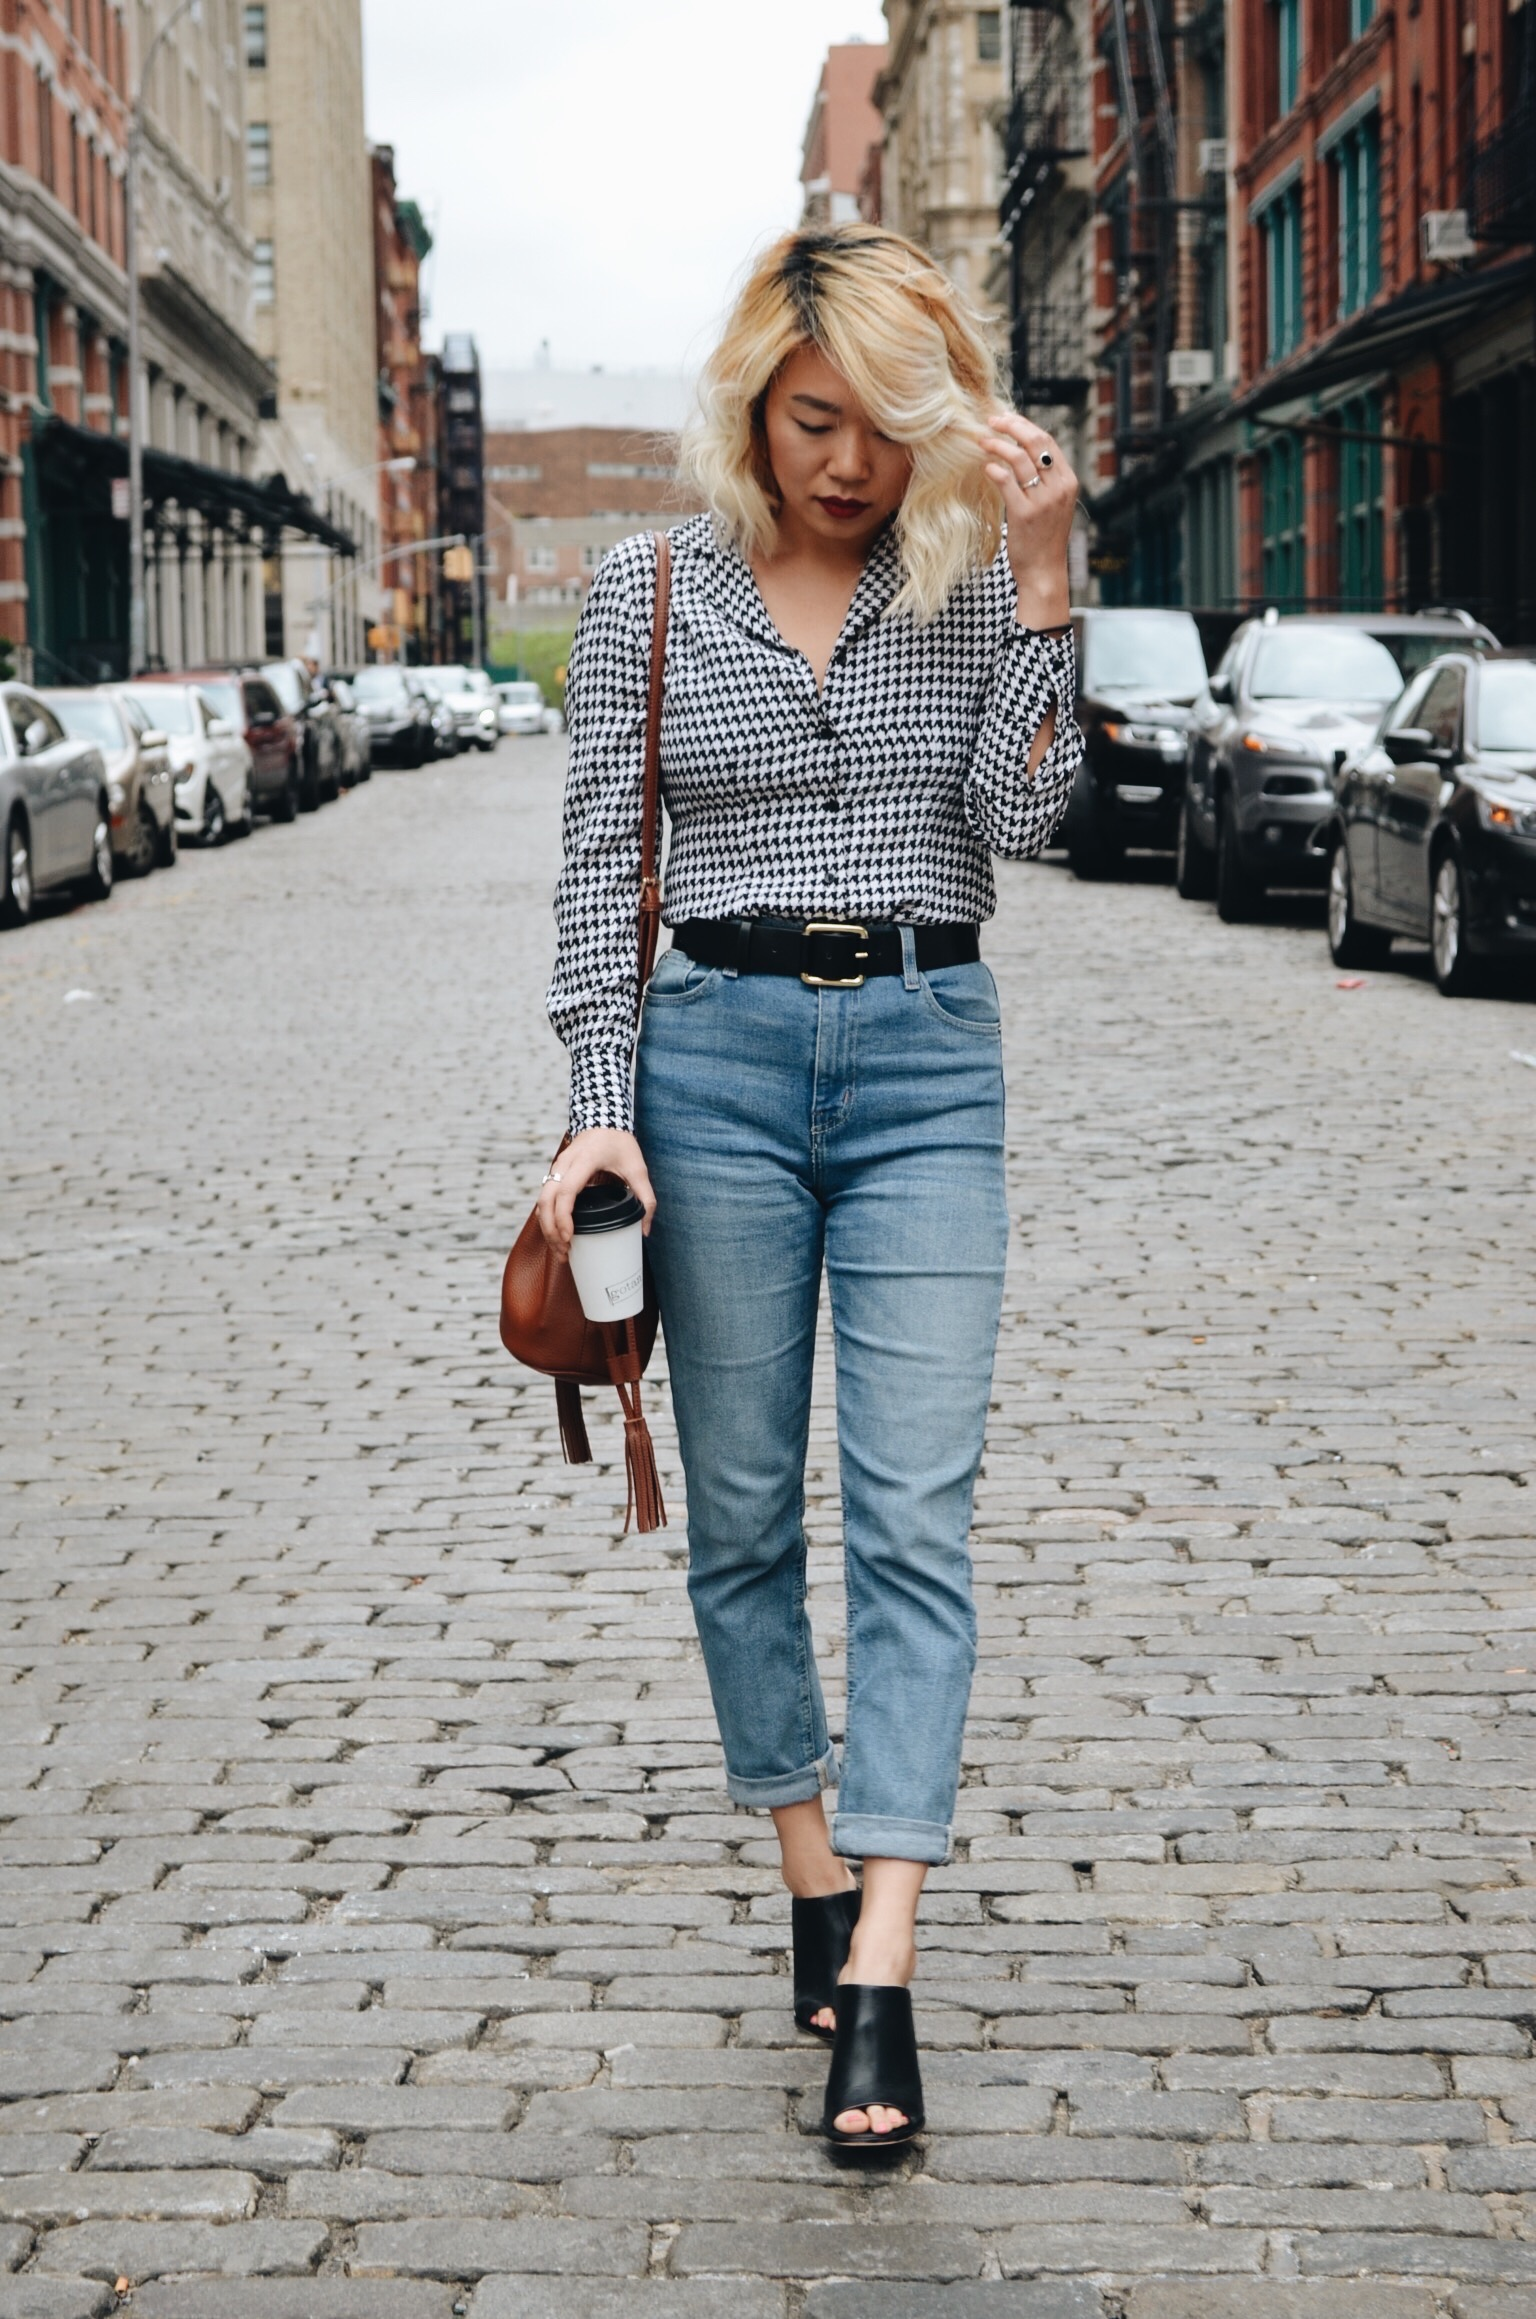 gingham shirt + jeans